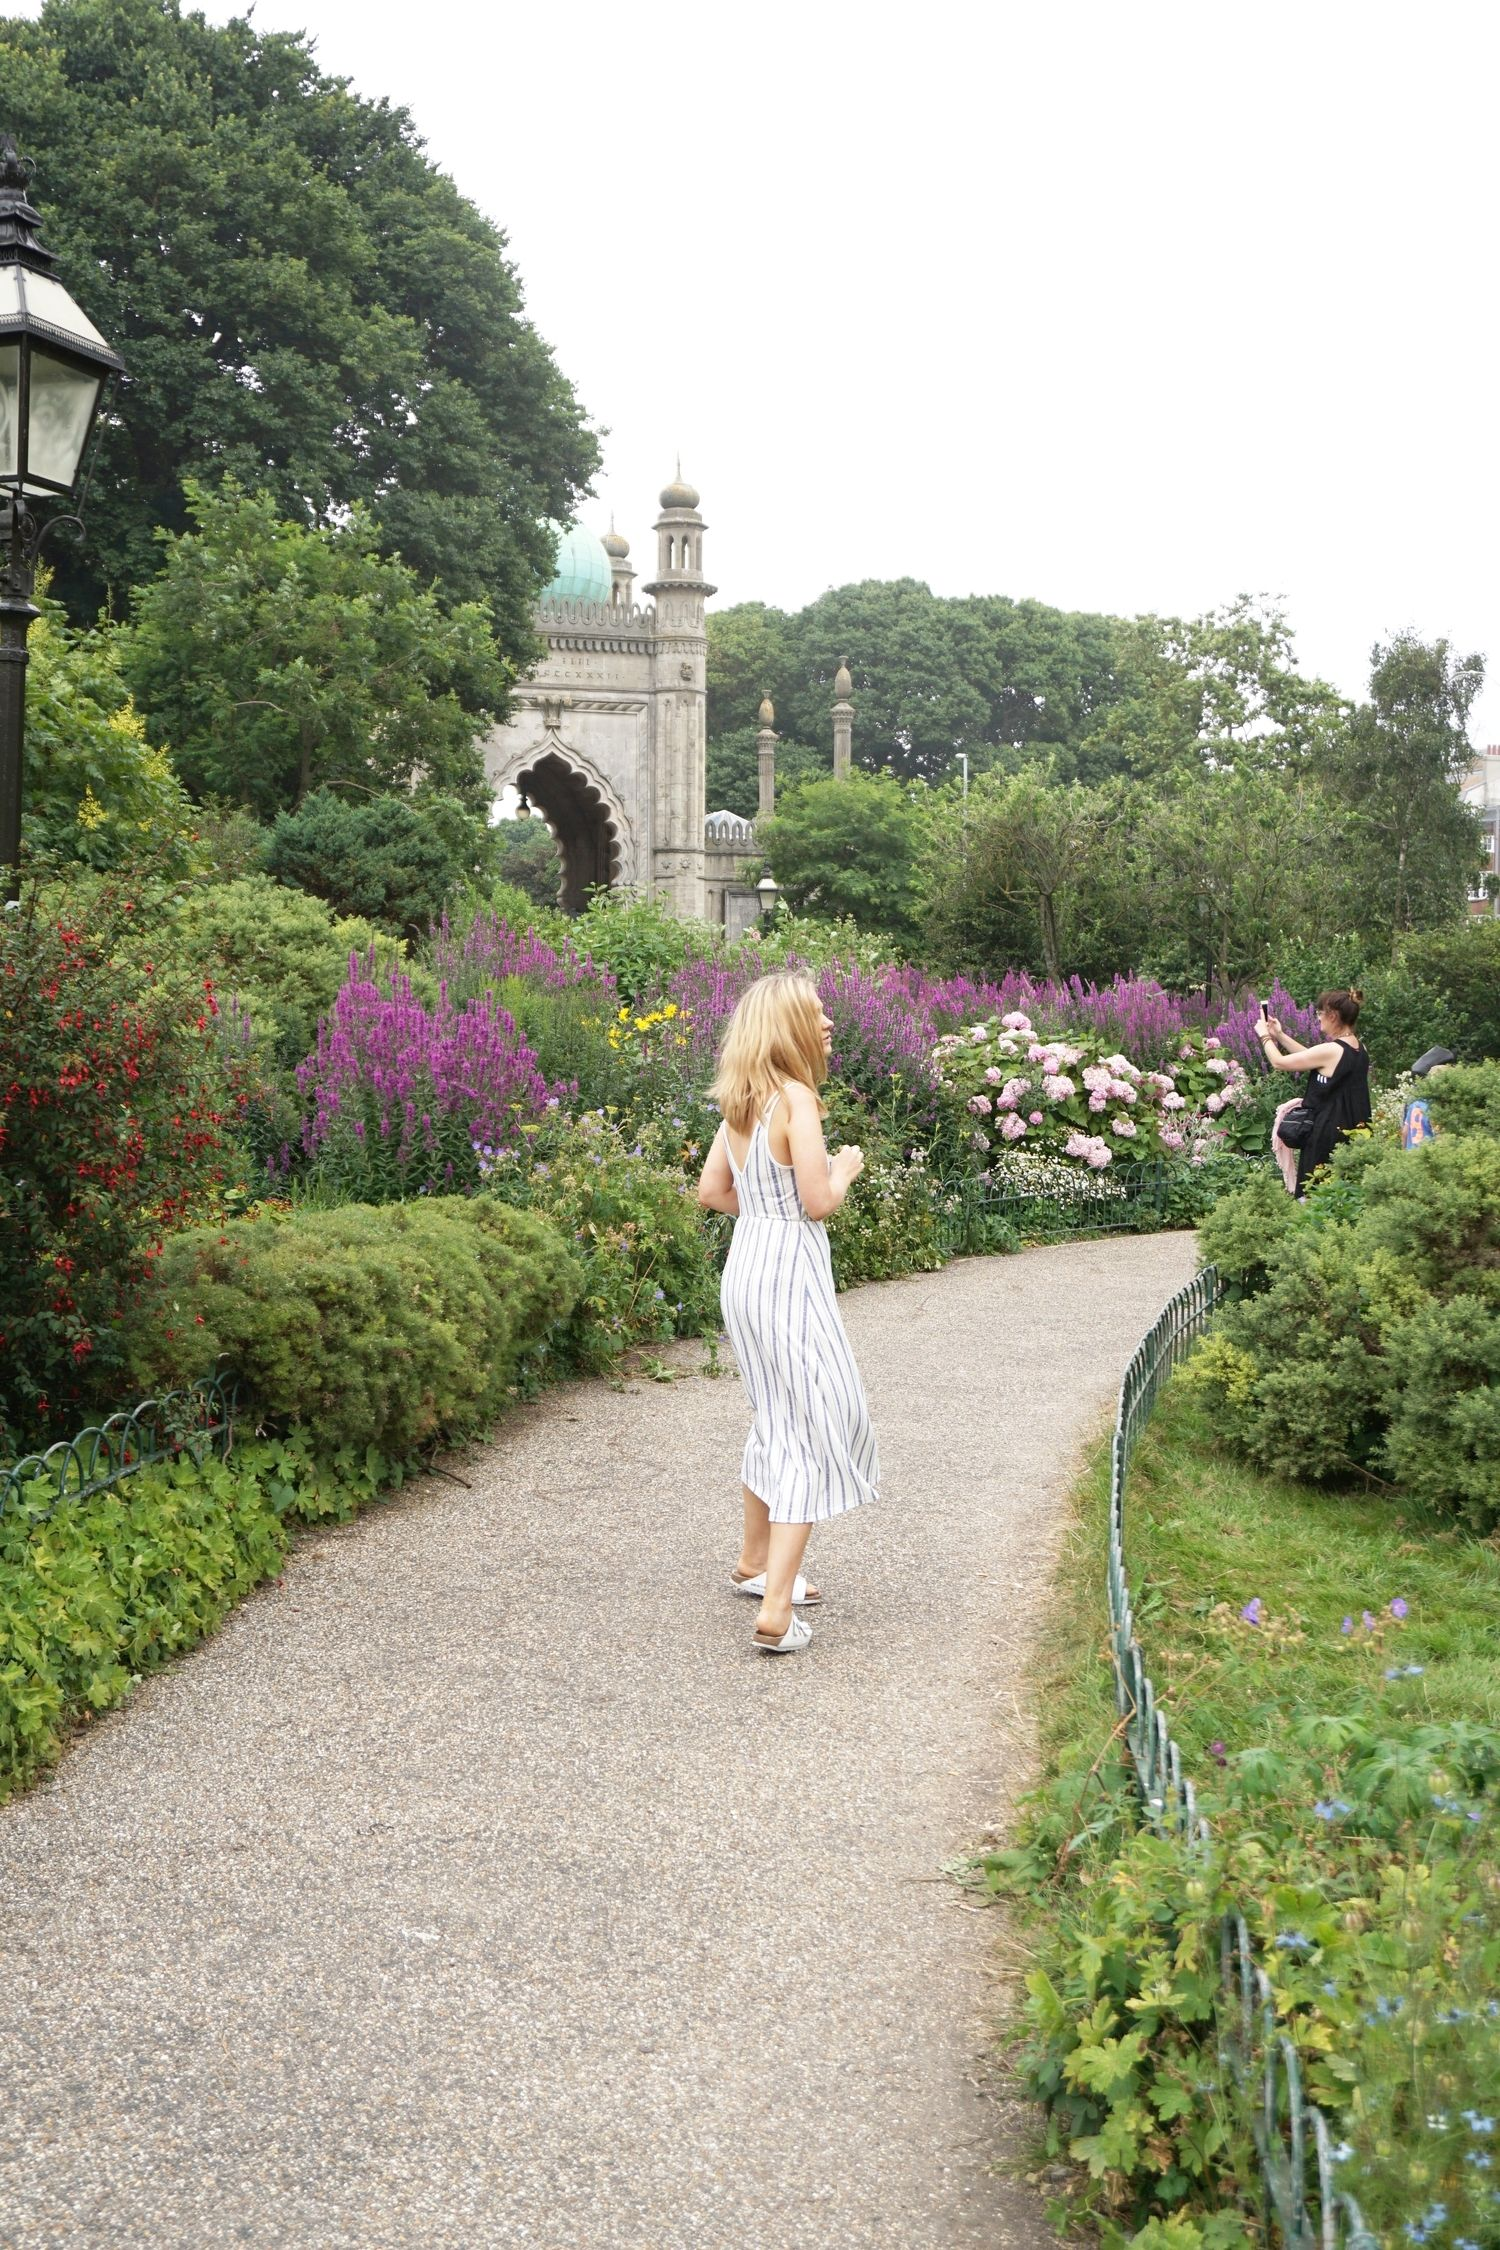 Brighton - Royal Pavilion Gardens | Day Tripping | Pinterest ...